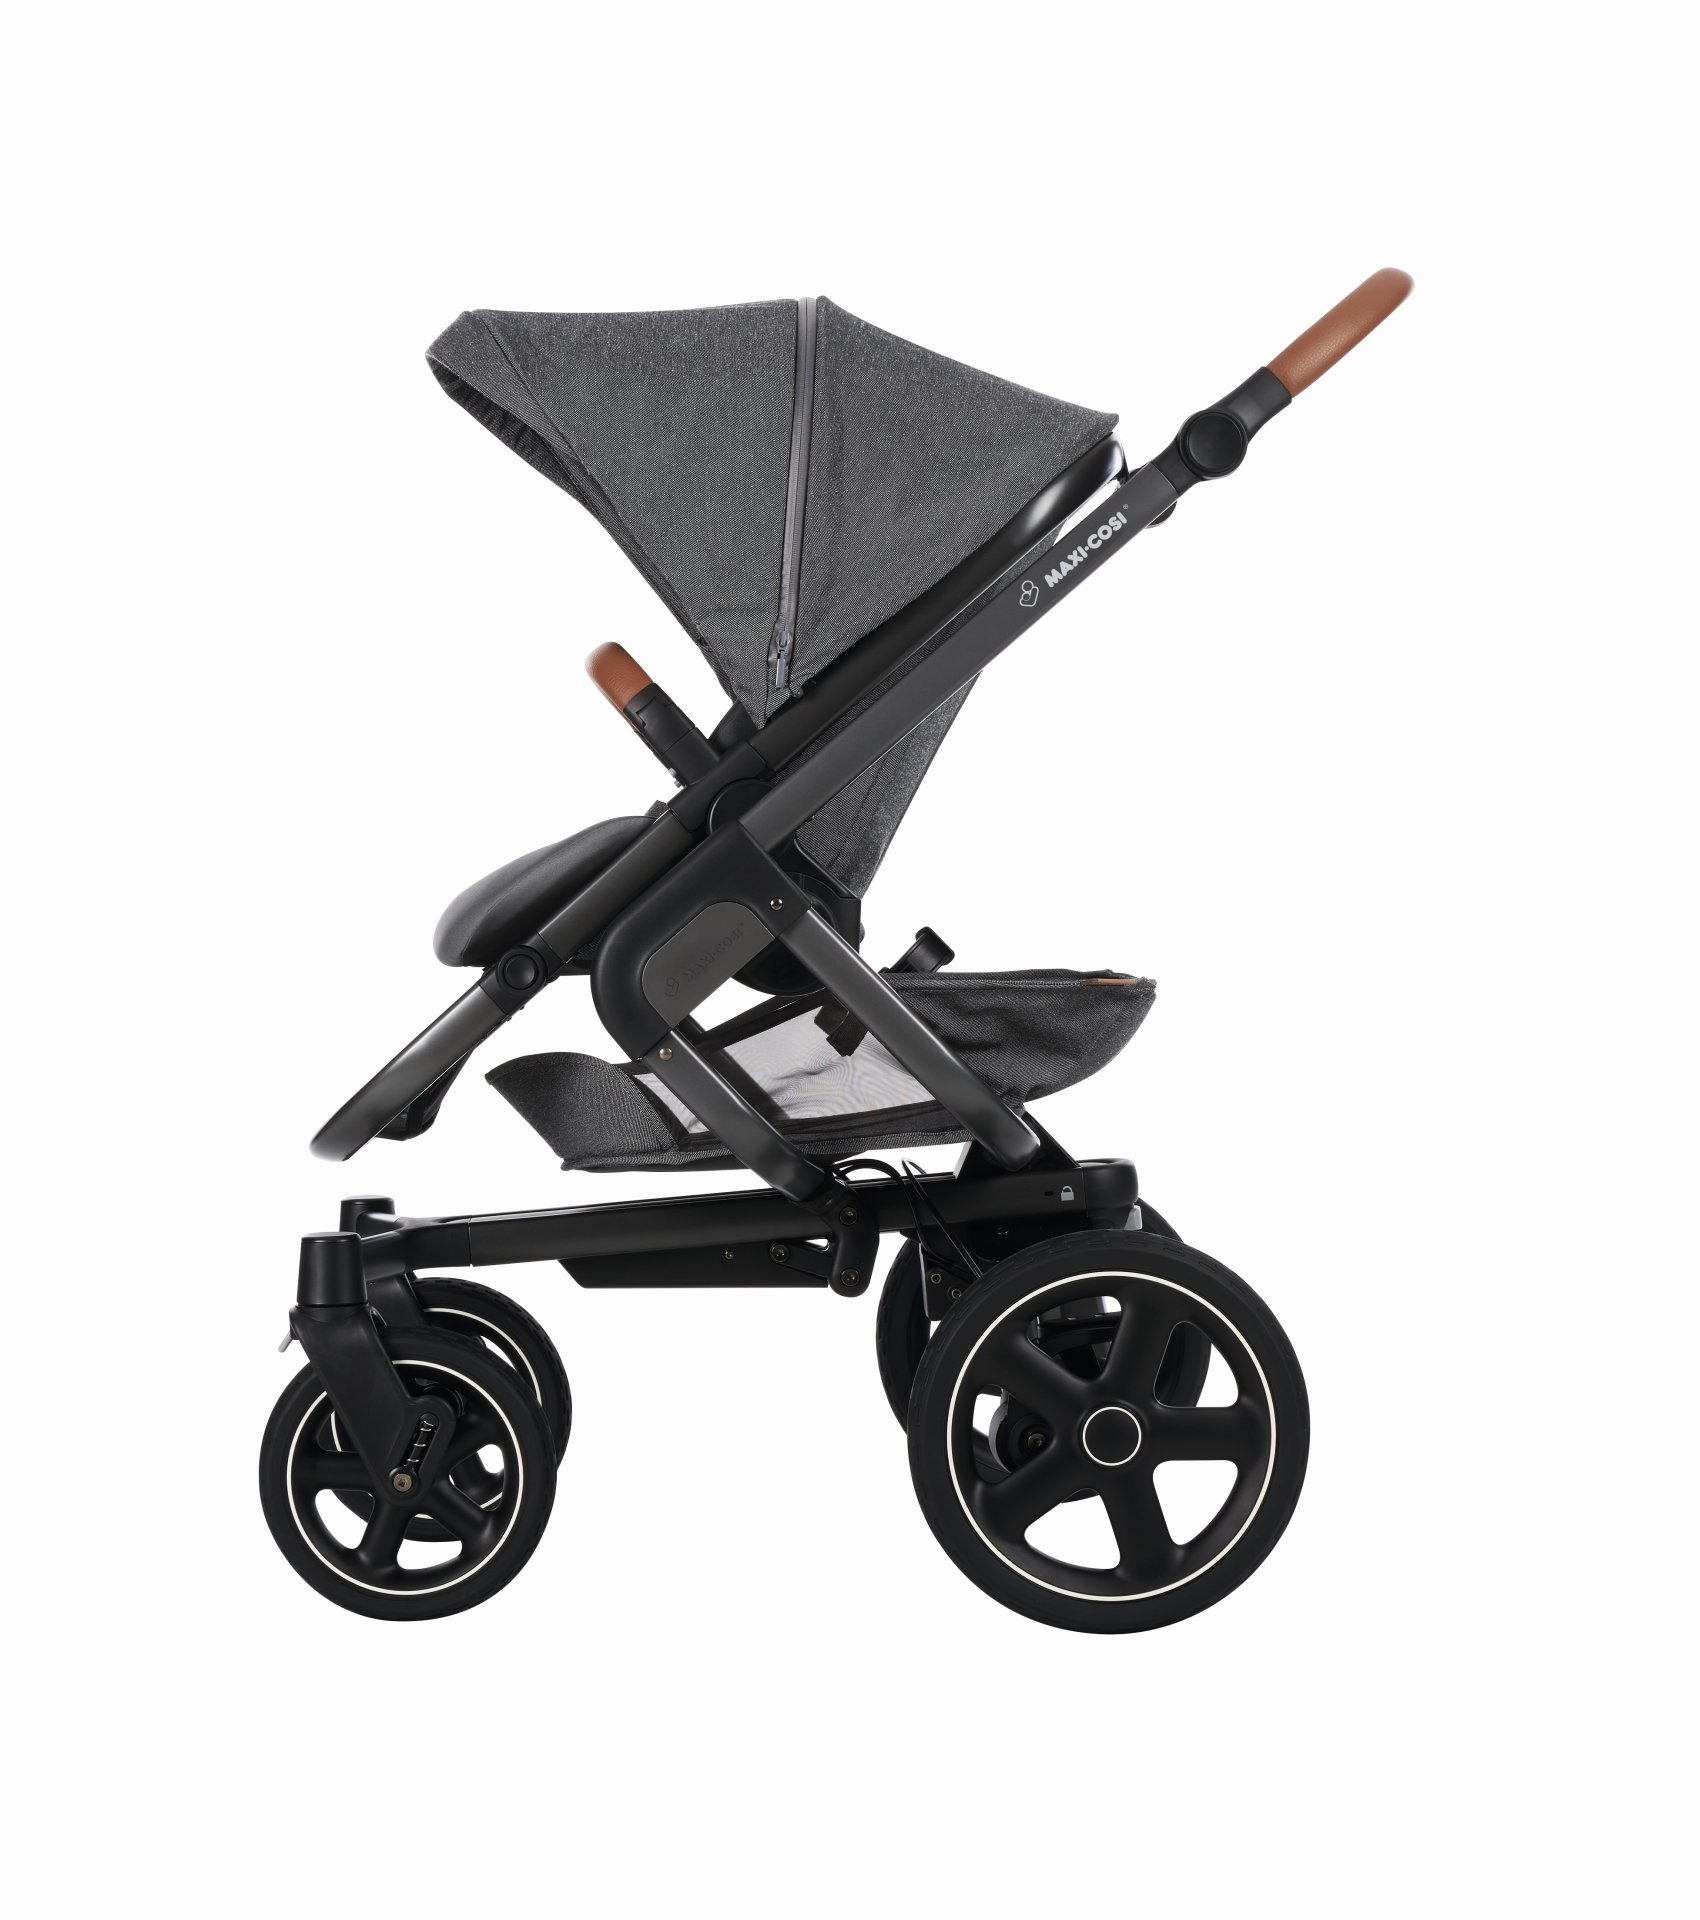 maxi cosi kinderwagen nova 4 rad 2019 sparkling grey. Black Bedroom Furniture Sets. Home Design Ideas